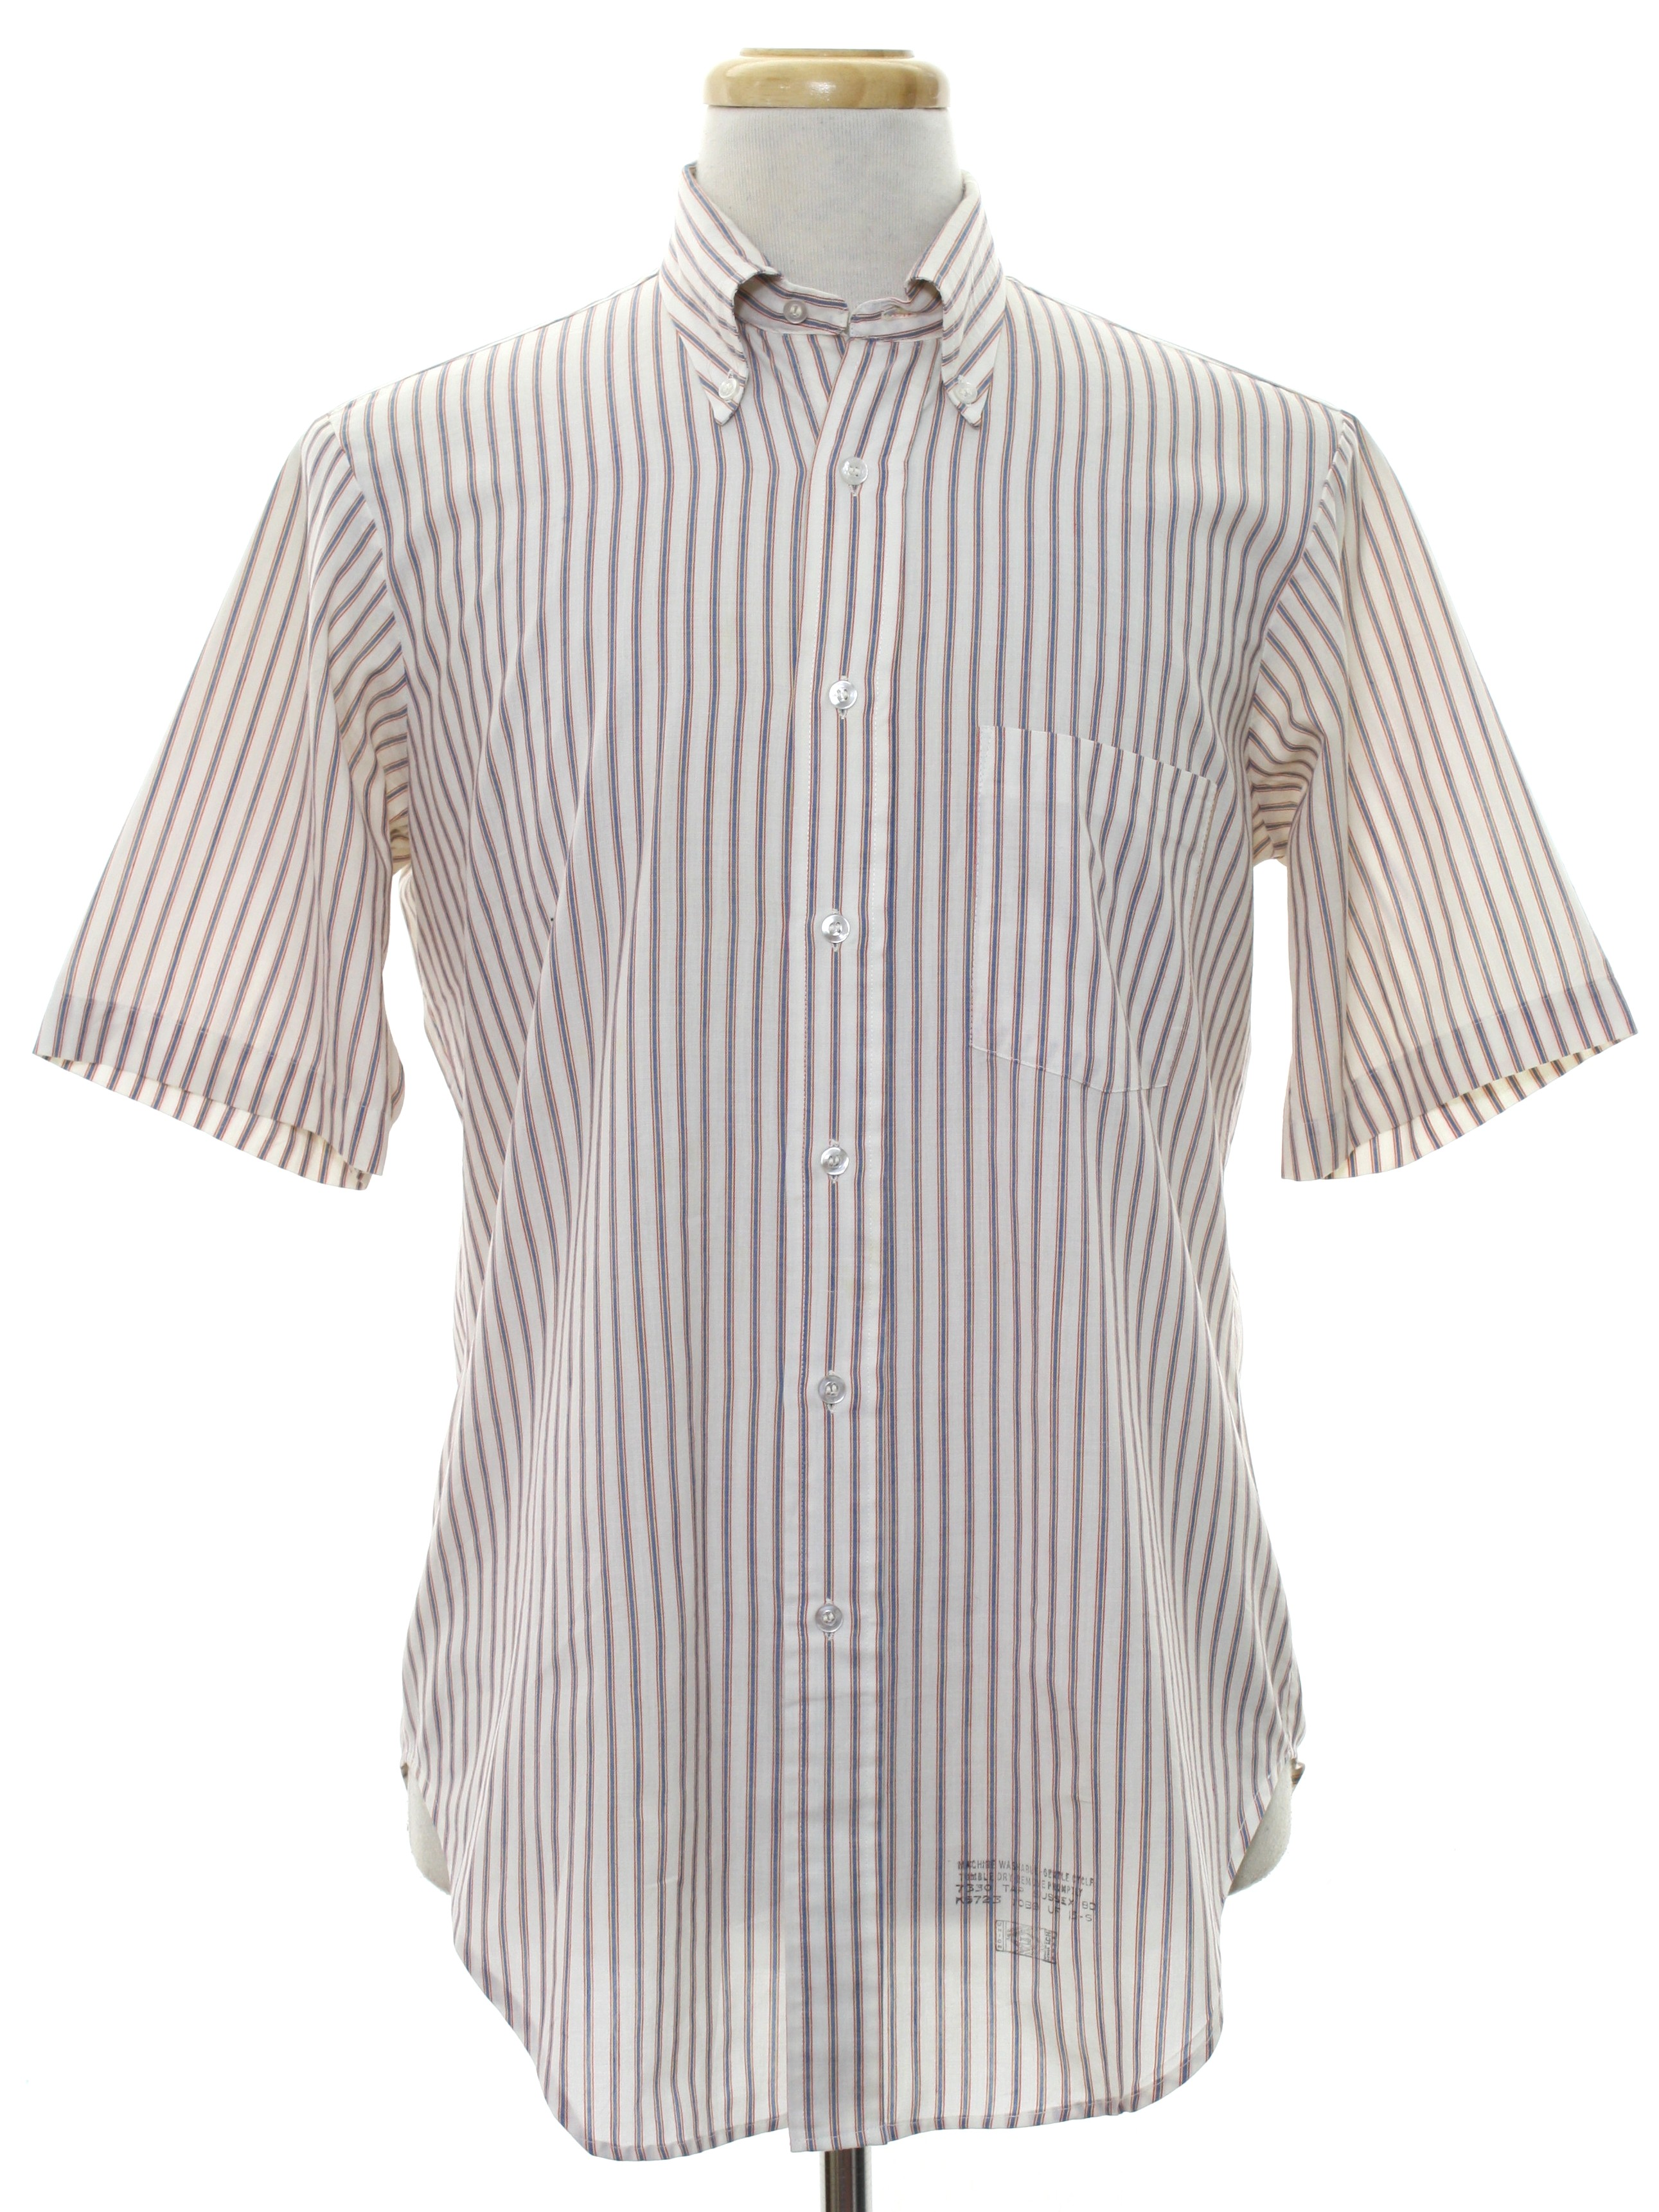 1950 39 s retro shirt 50s arrow decton mens white for Red and white striped button down shirt